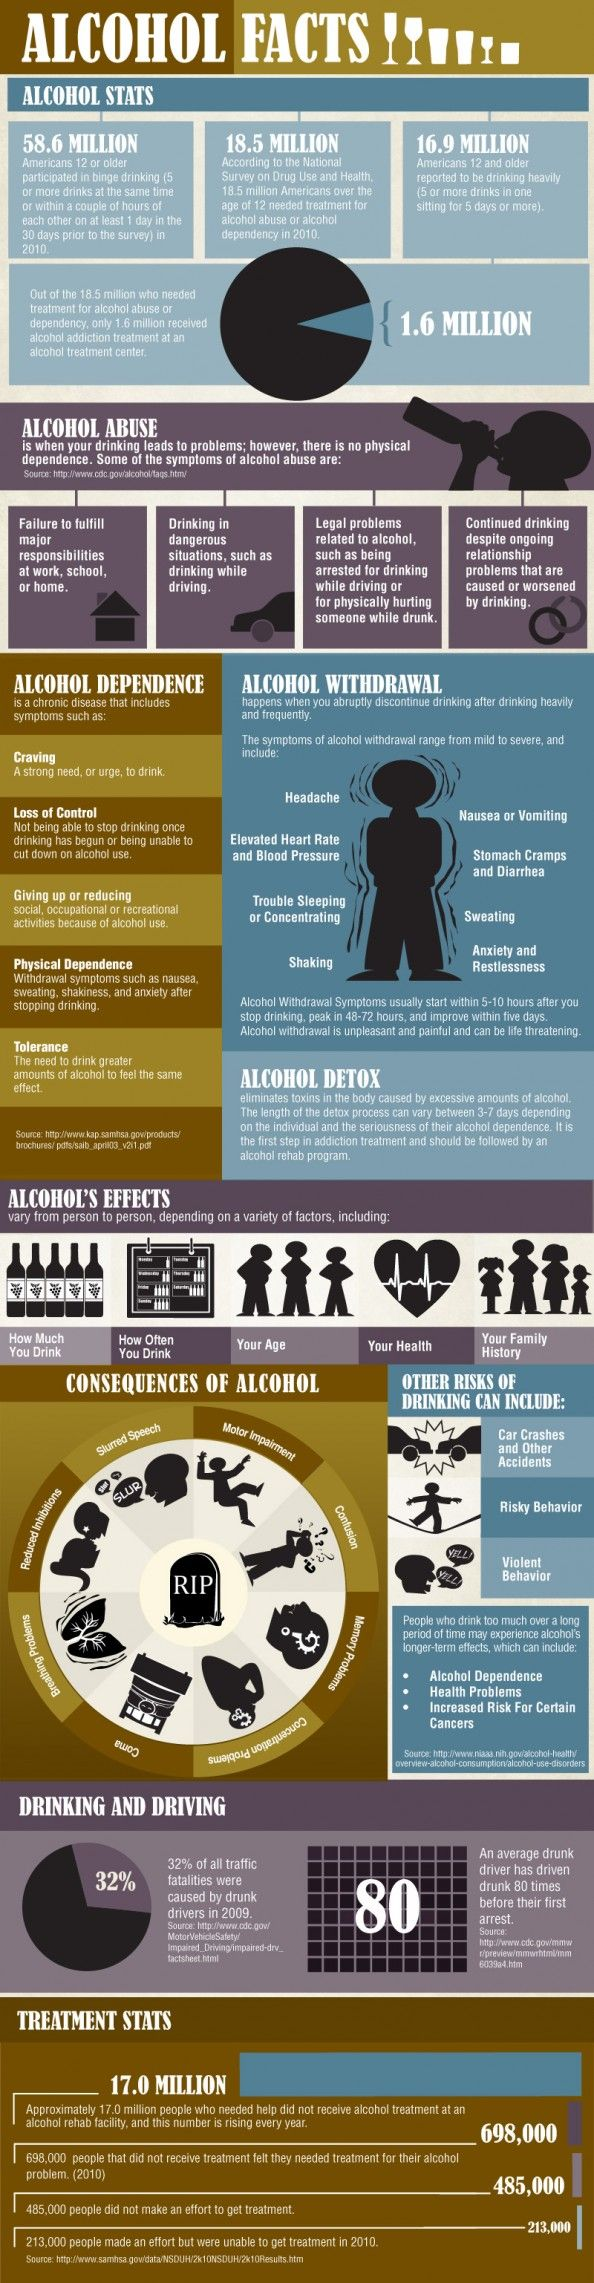 the consequences of alcohol abuse and dependence Alcohol addiction and abuse alcoholism is one of the most common addictions in america the social acceptance of drinking can often lead to denial - and, if left untreated, severe consequences.